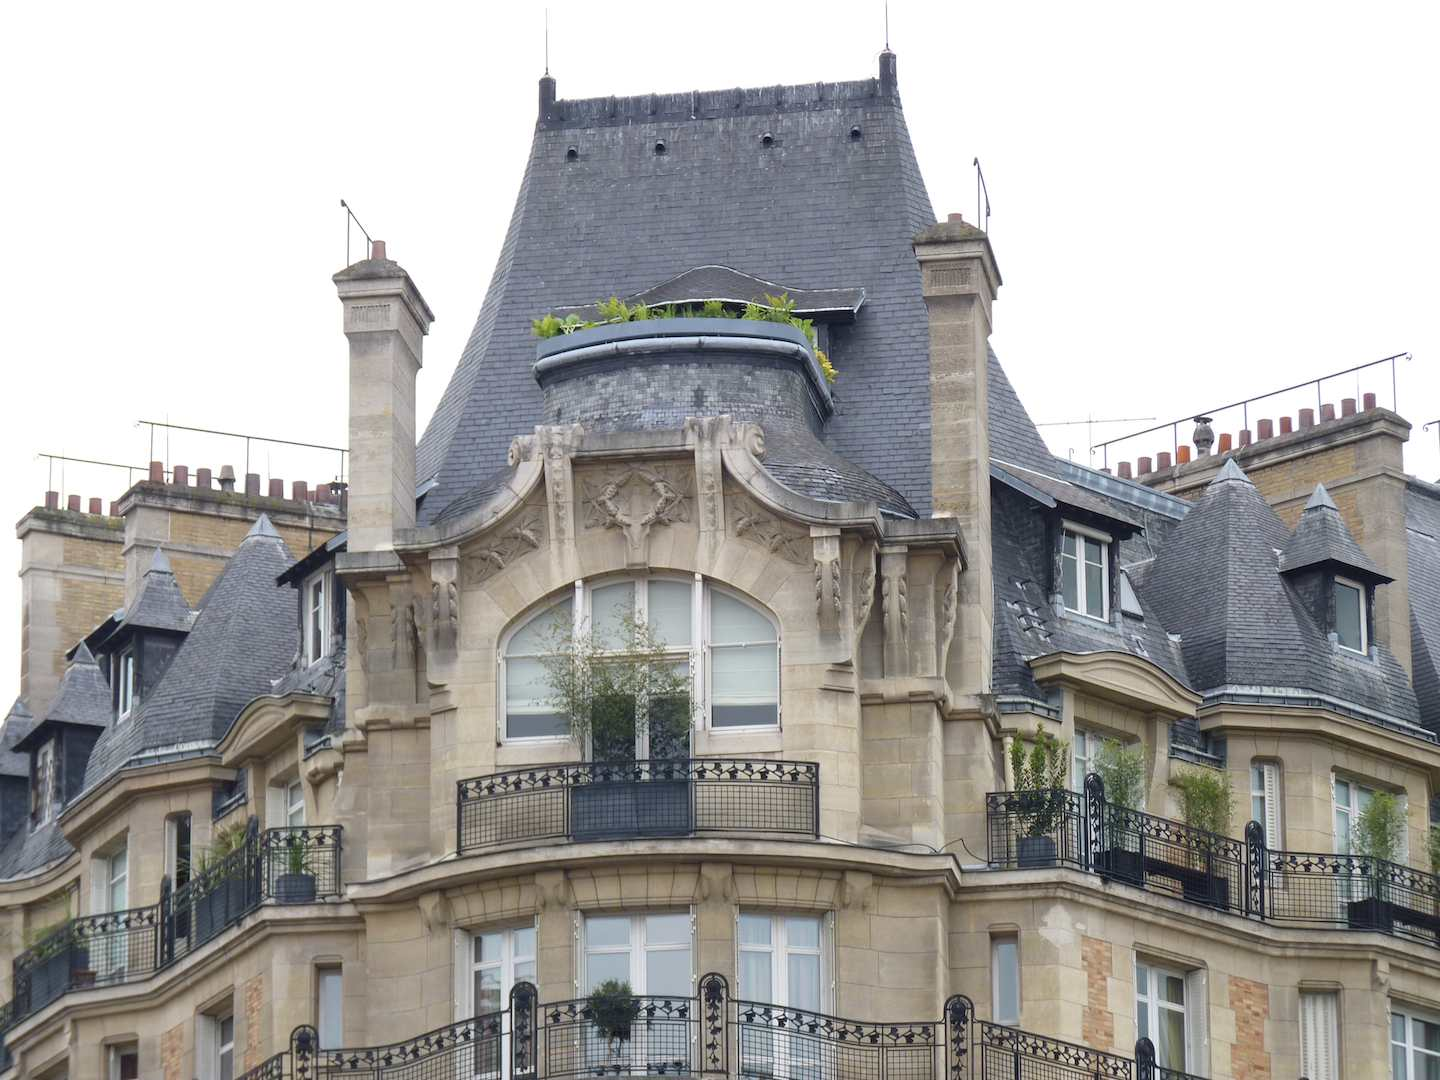 Dispatch from Metz: Roof Lines in Paris